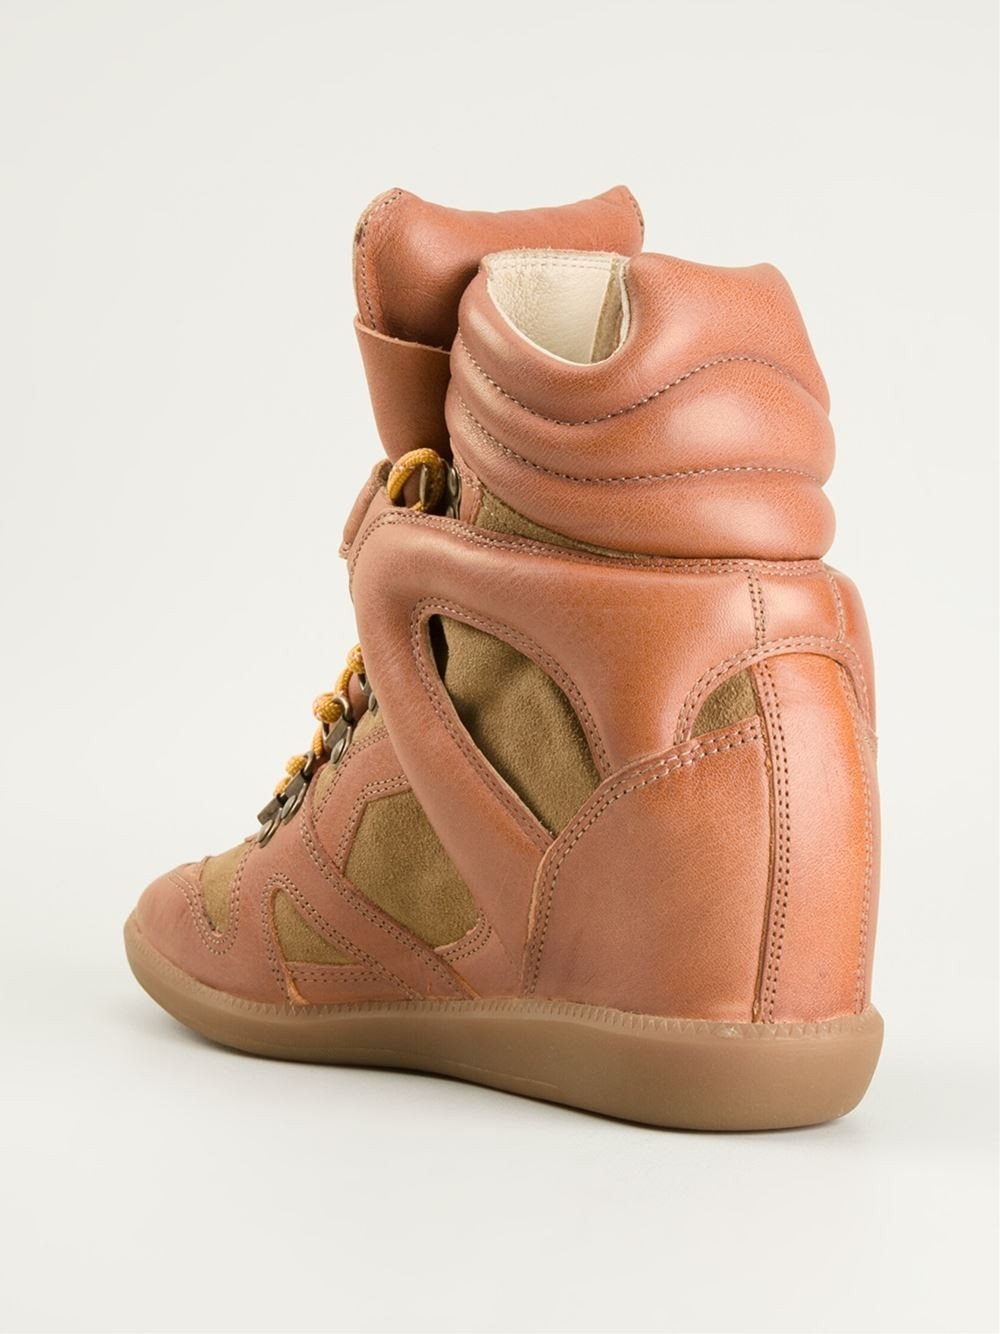 Isabel Marant Buck Hi-Top Orange Women's Wedge Sneakers